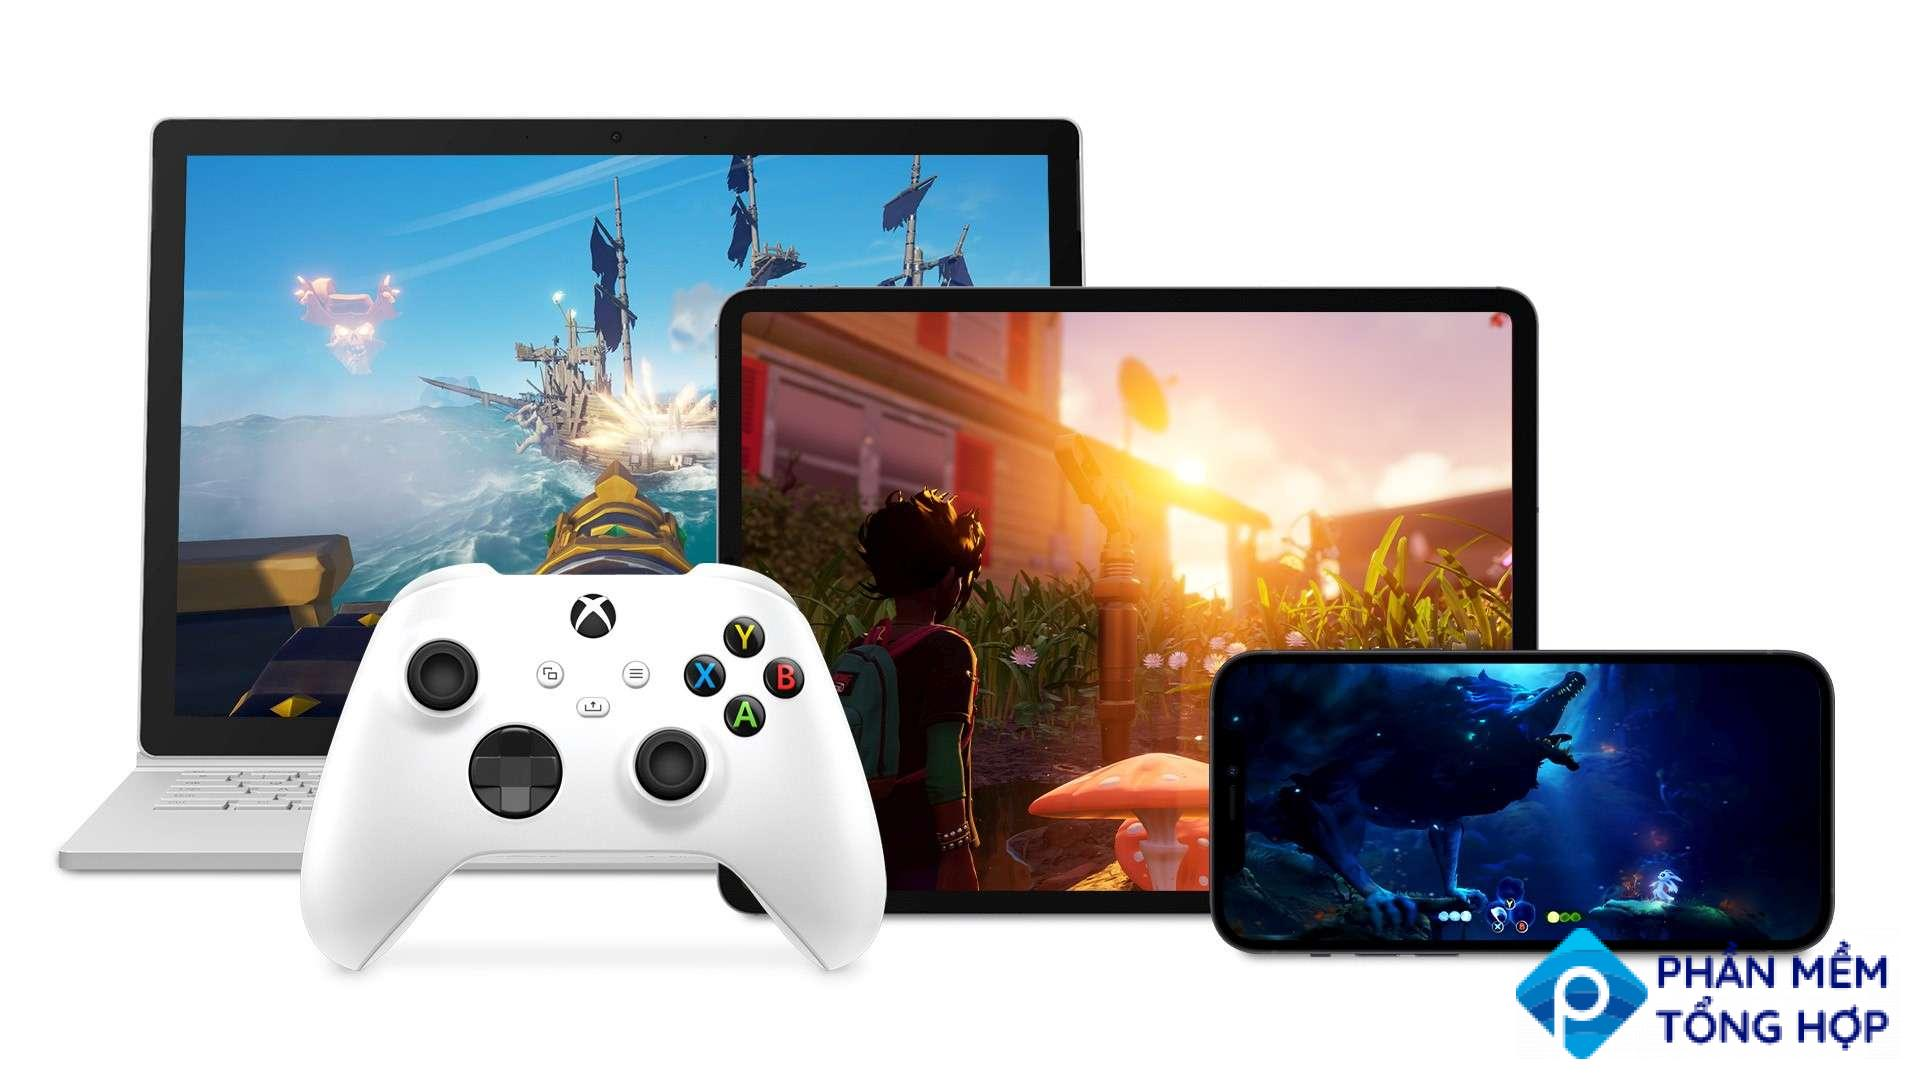 An Xbox controller in front of a laptop, iPad, and Android phone all playing Xbox games